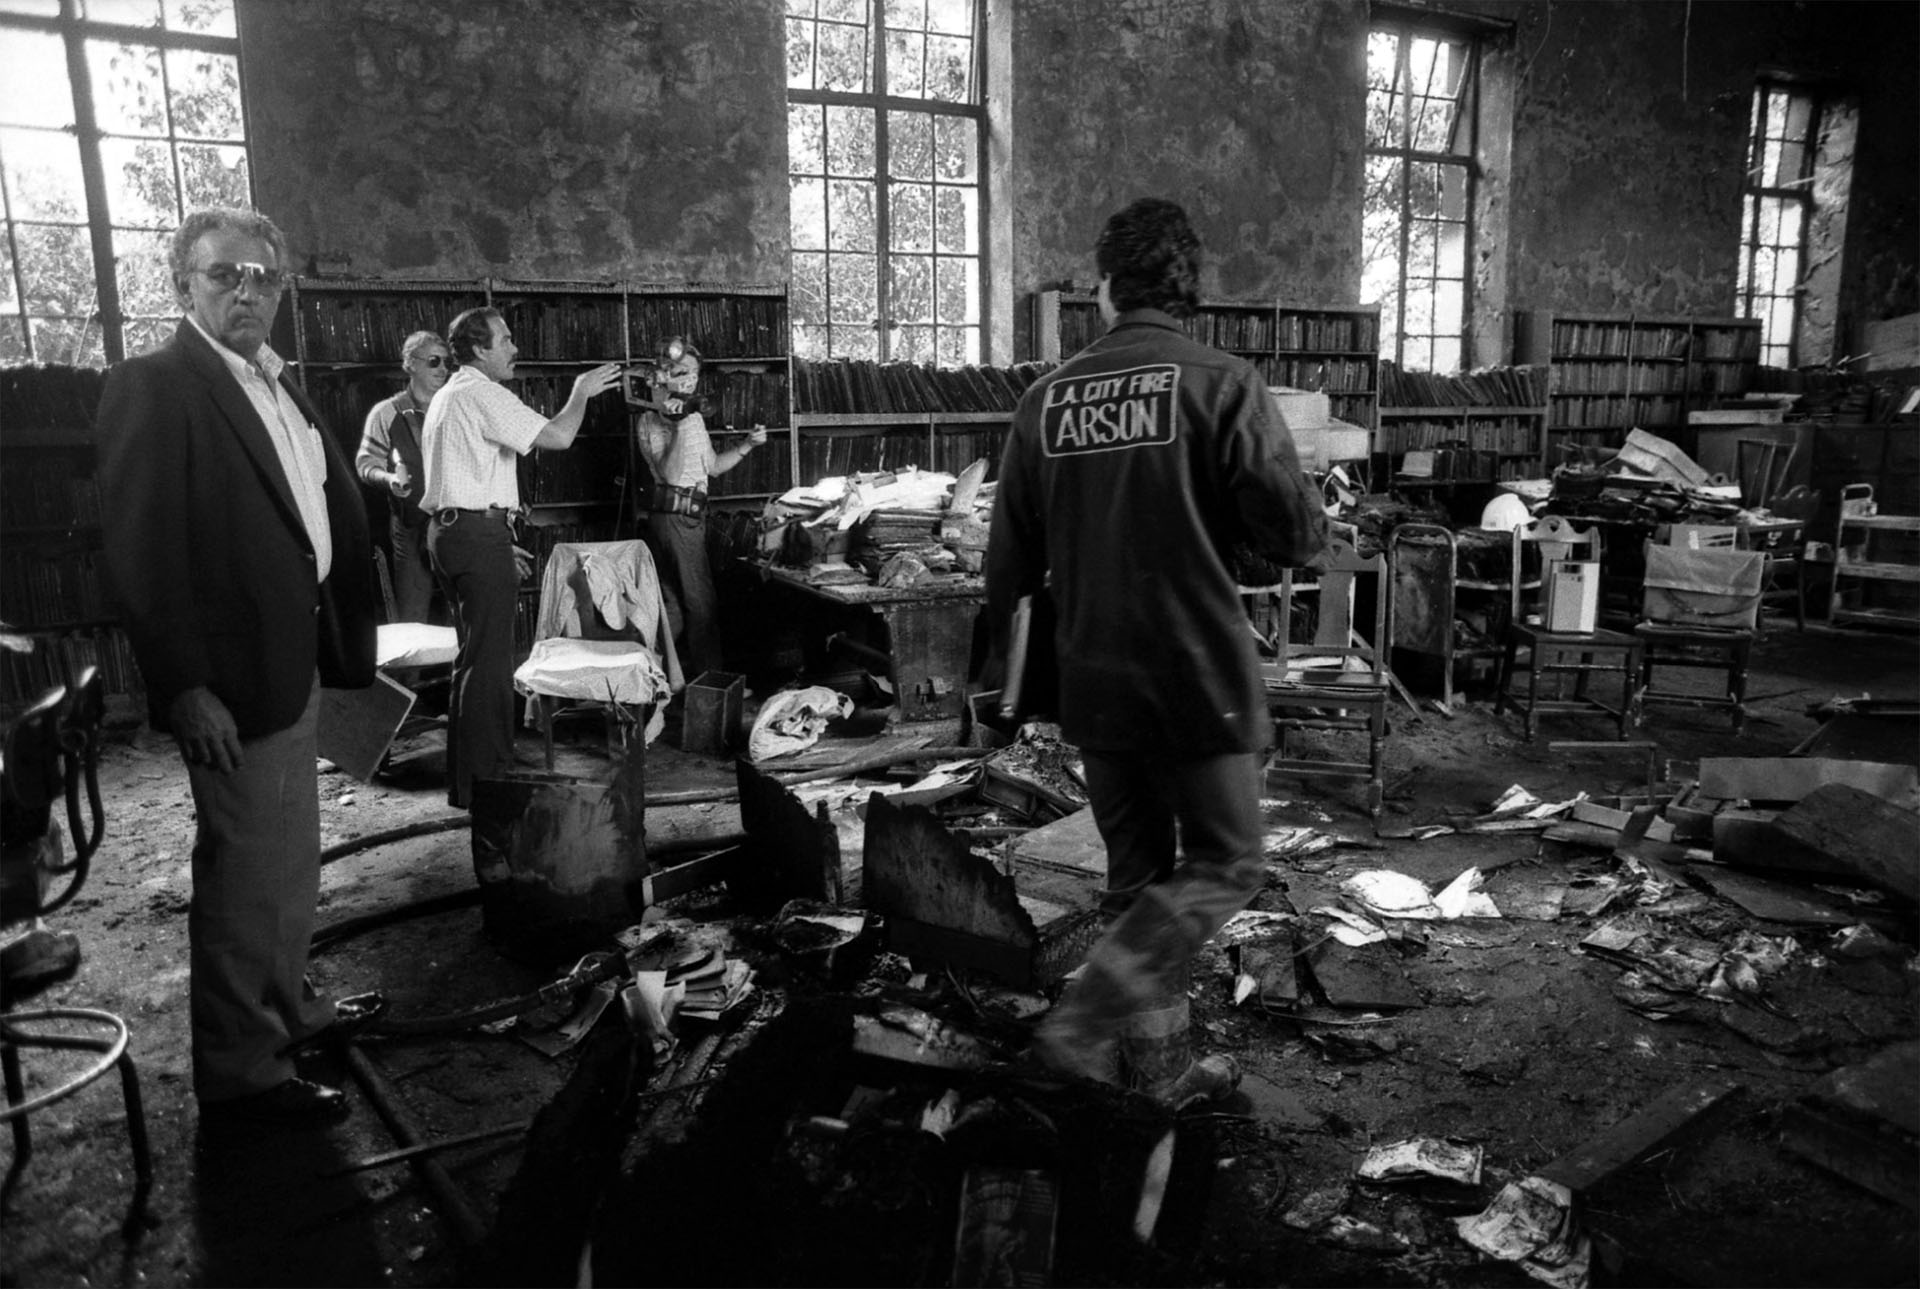 Arson investigators in art and music reading room of Los Angeles Central Library, 1986